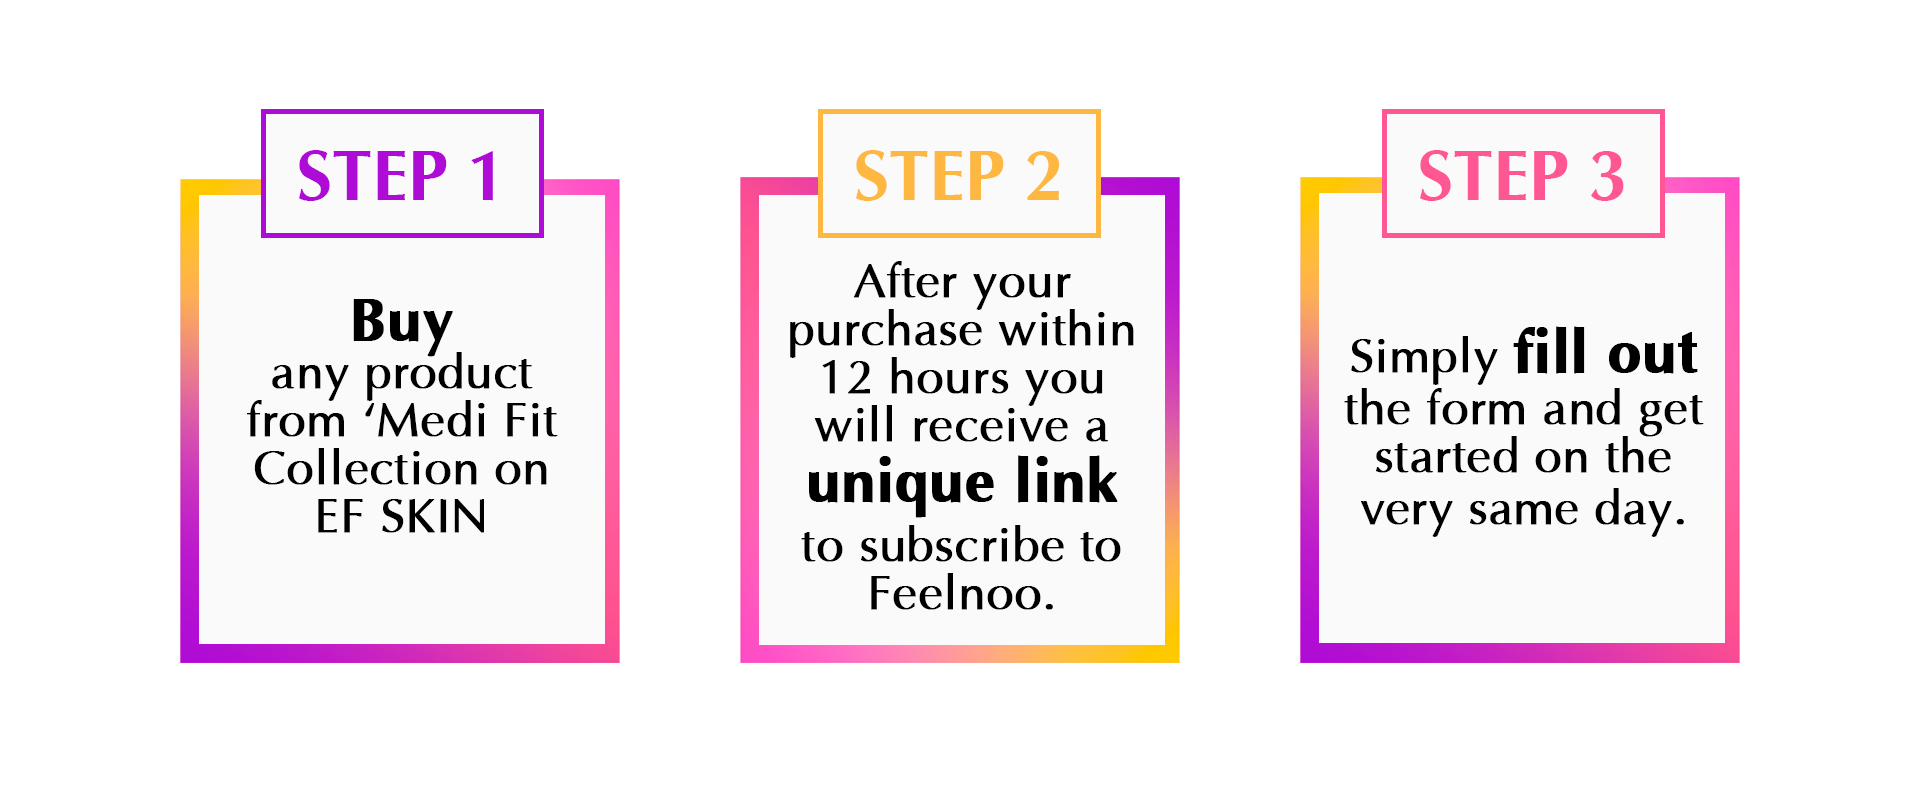 3 Steps To Receiving Free Trial at Feelnoo